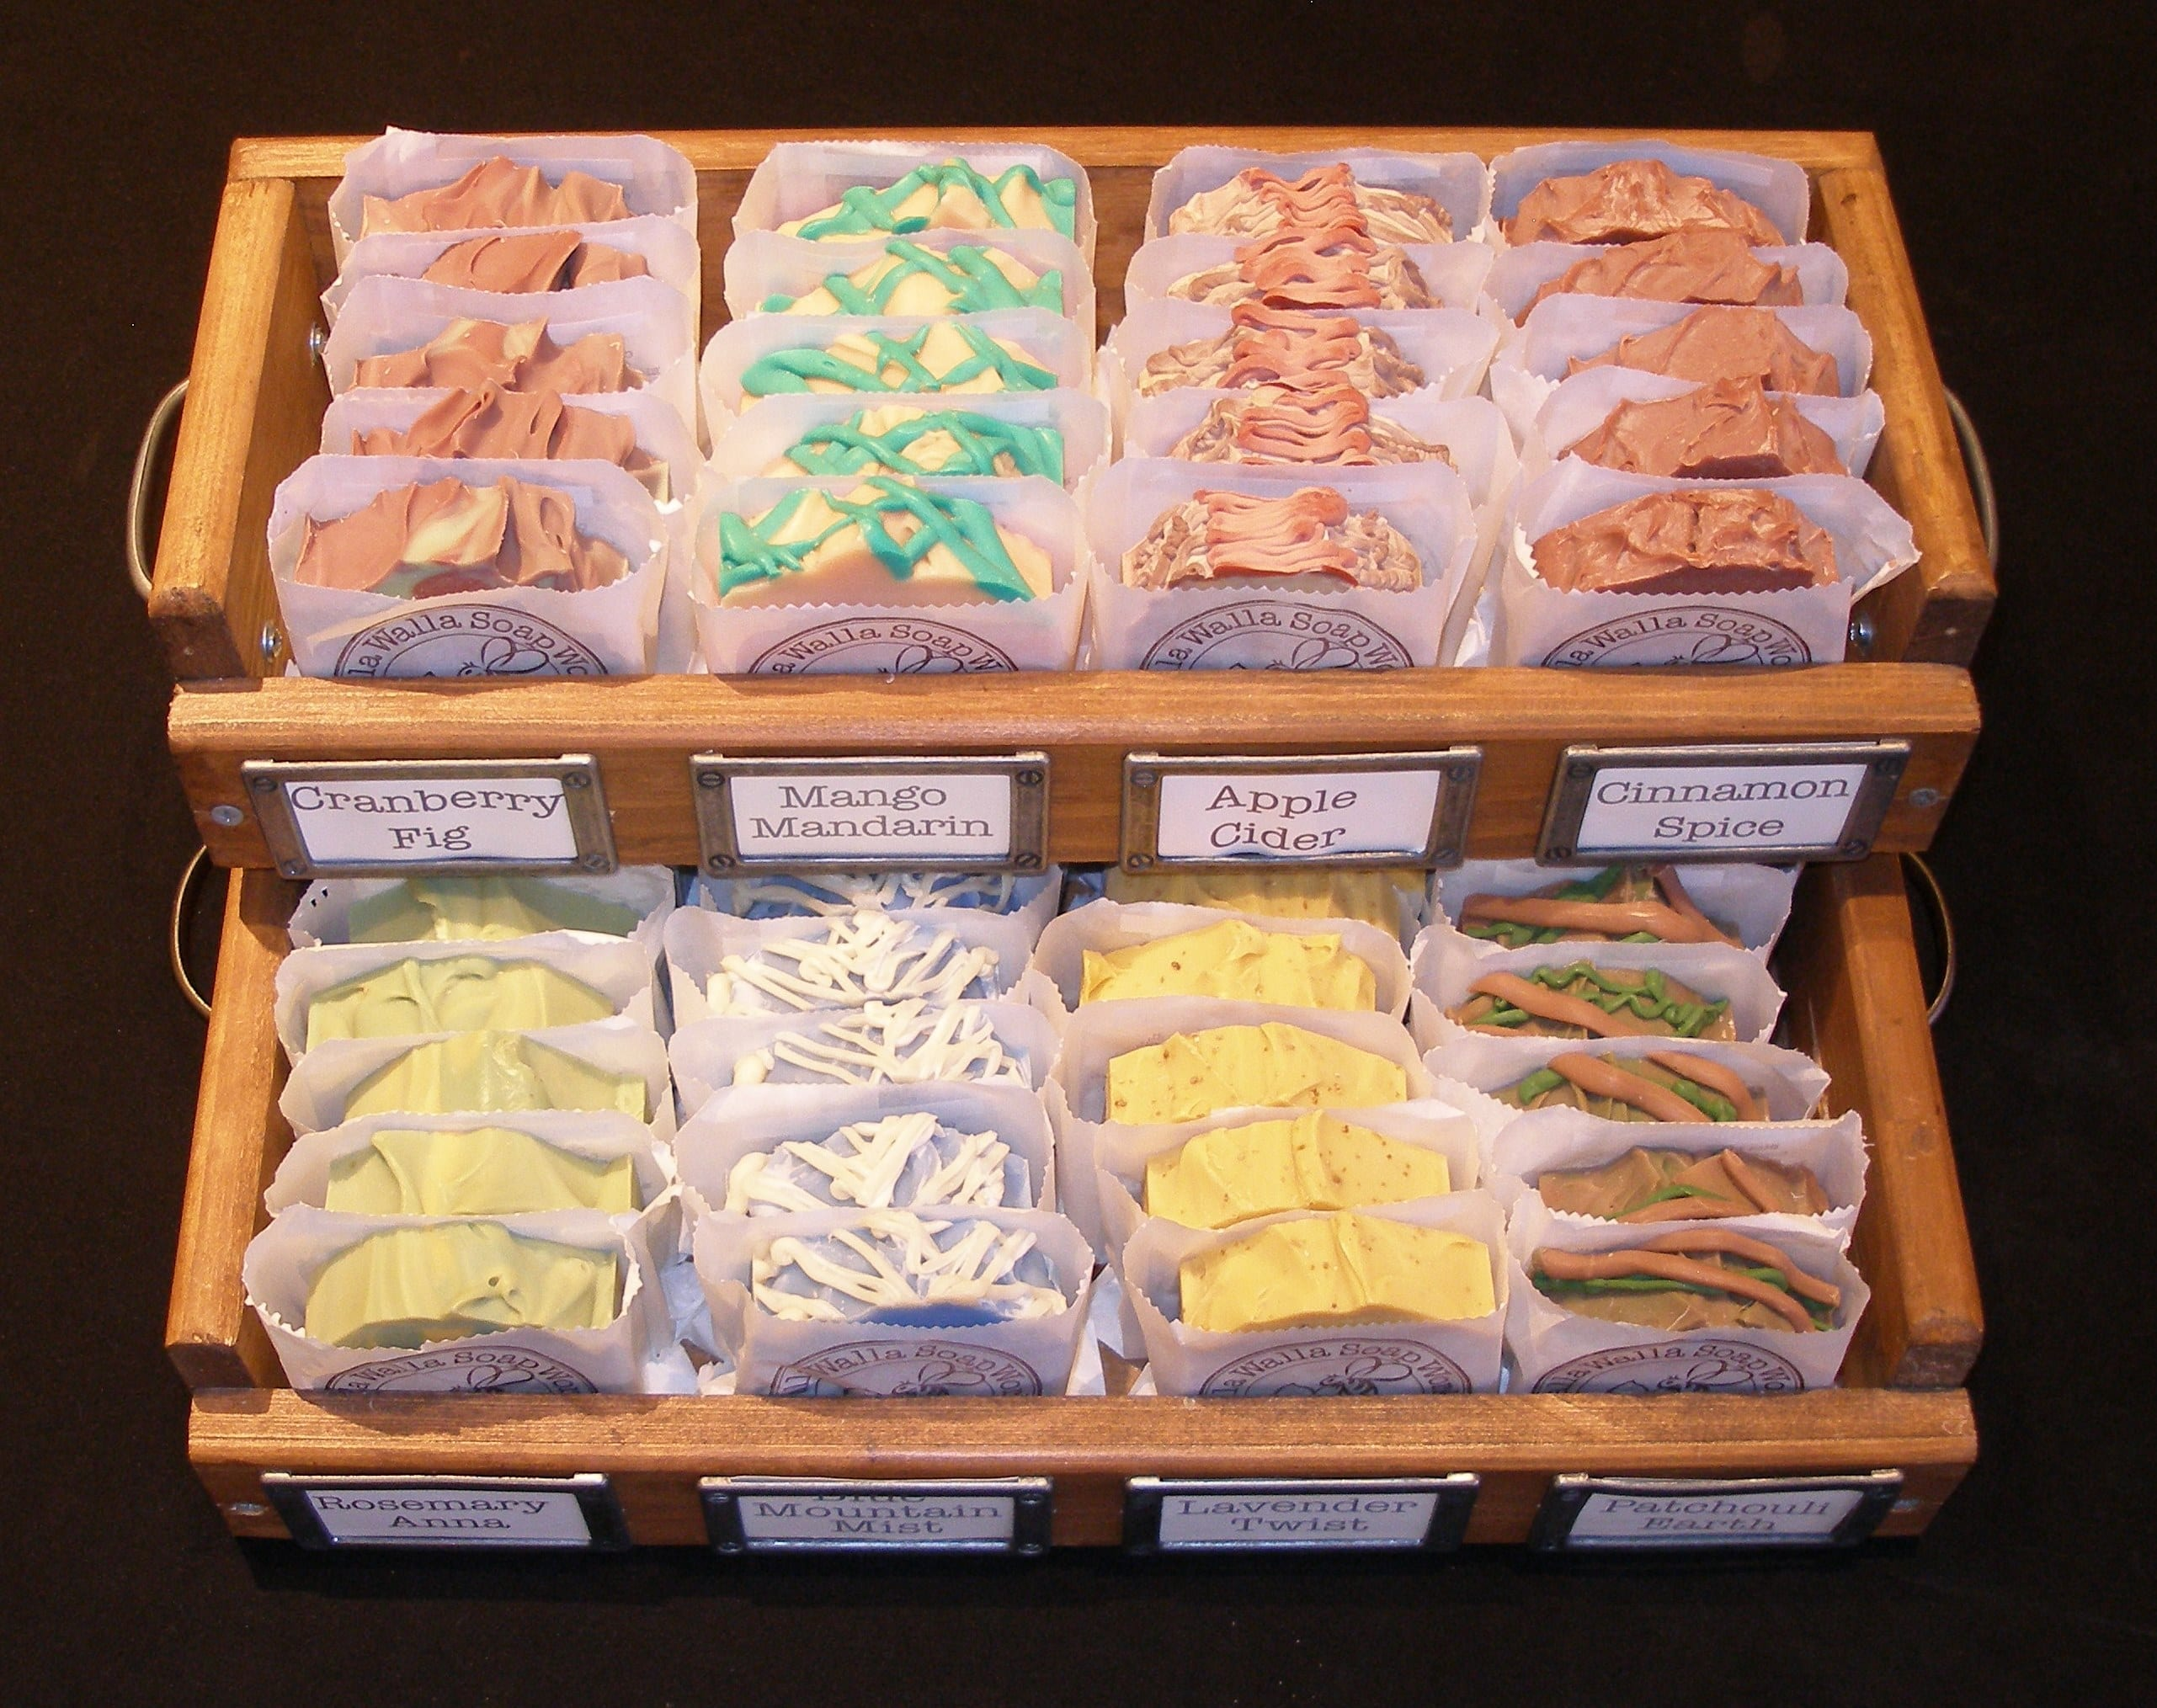 Large wooden trays hold and display the useful, usable soap sculptures of Walla Walla Soap Works